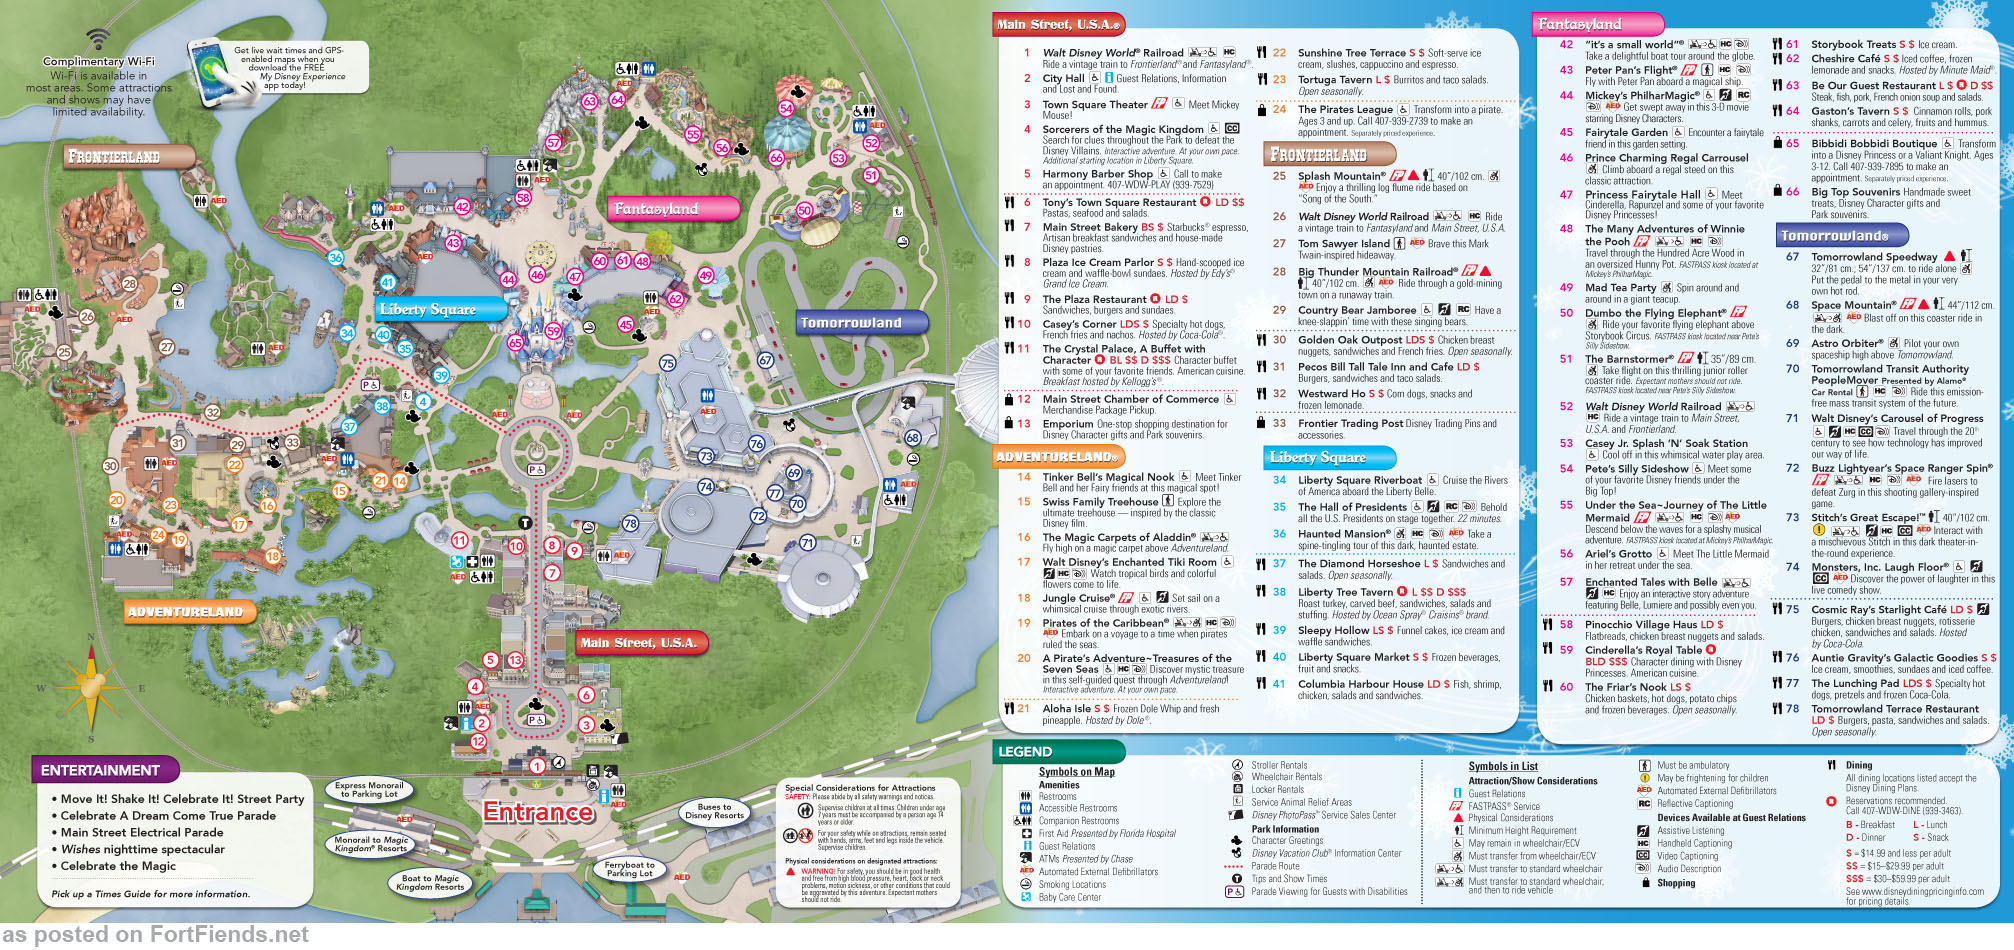 ... Magic Kingdom Map 2015. View Original . [Updated on 12/25/2015 at 07